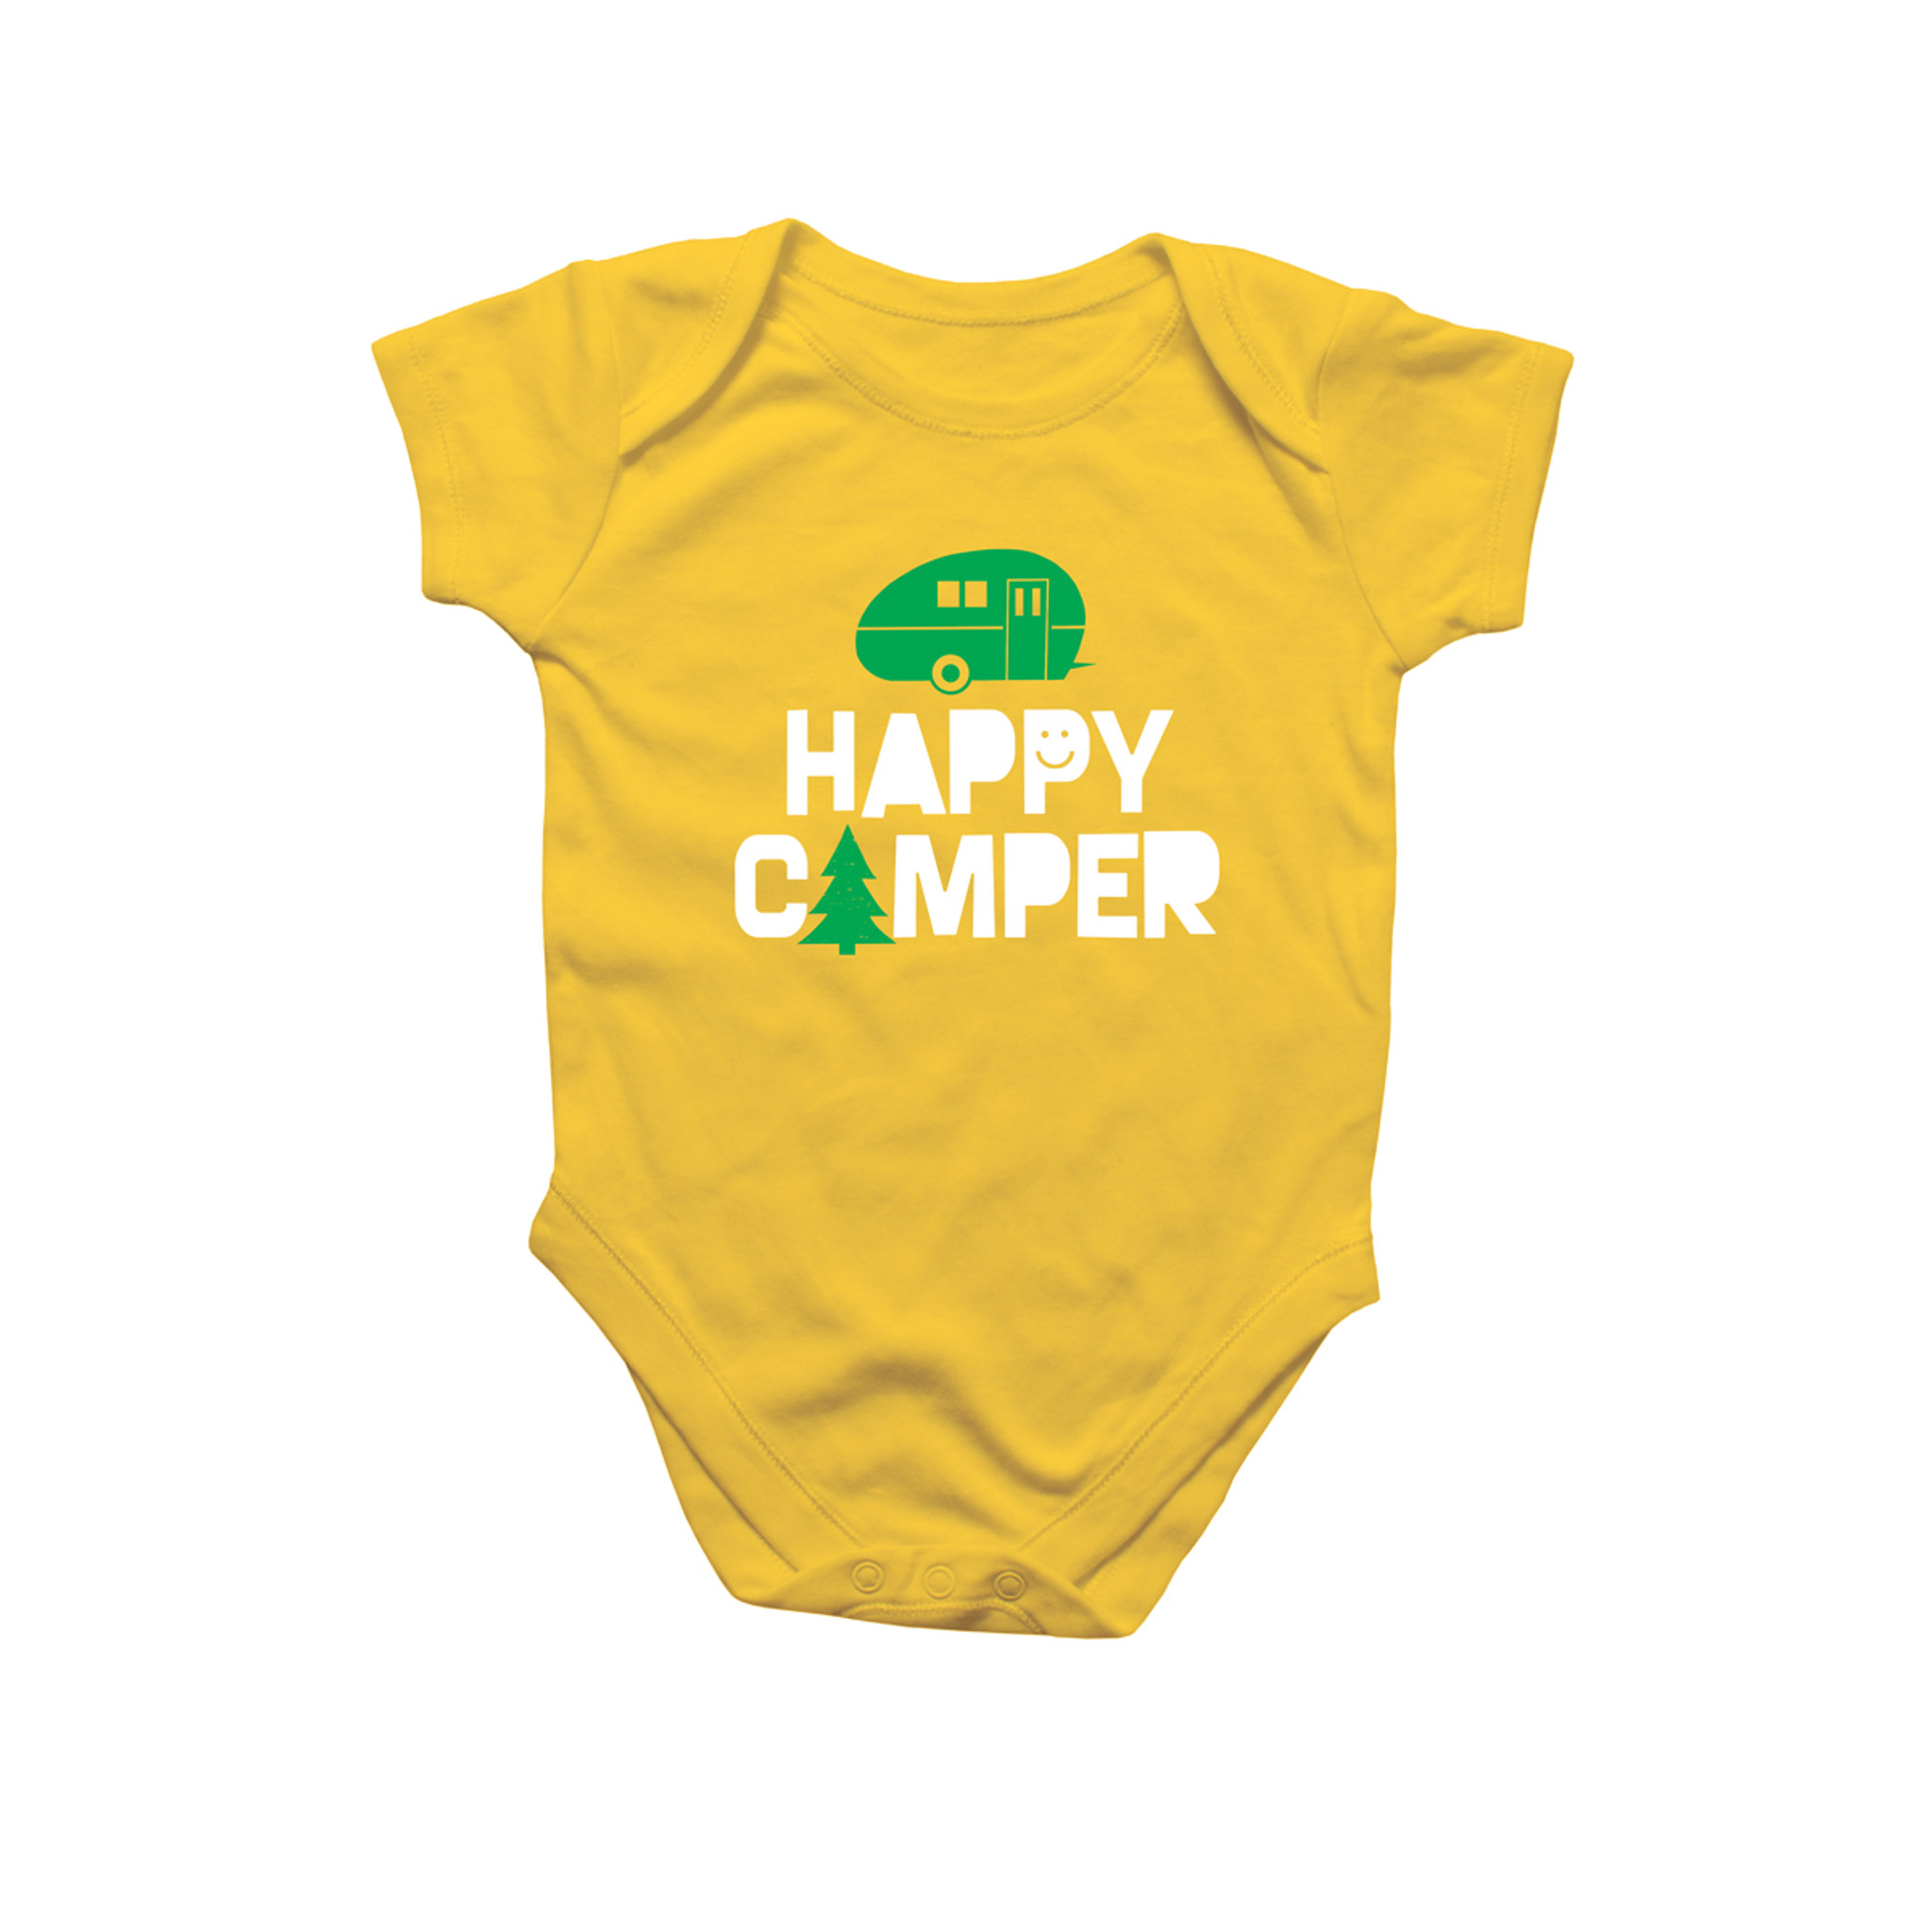 Happy Camper Baby Onesie by Rock Scissor Paper